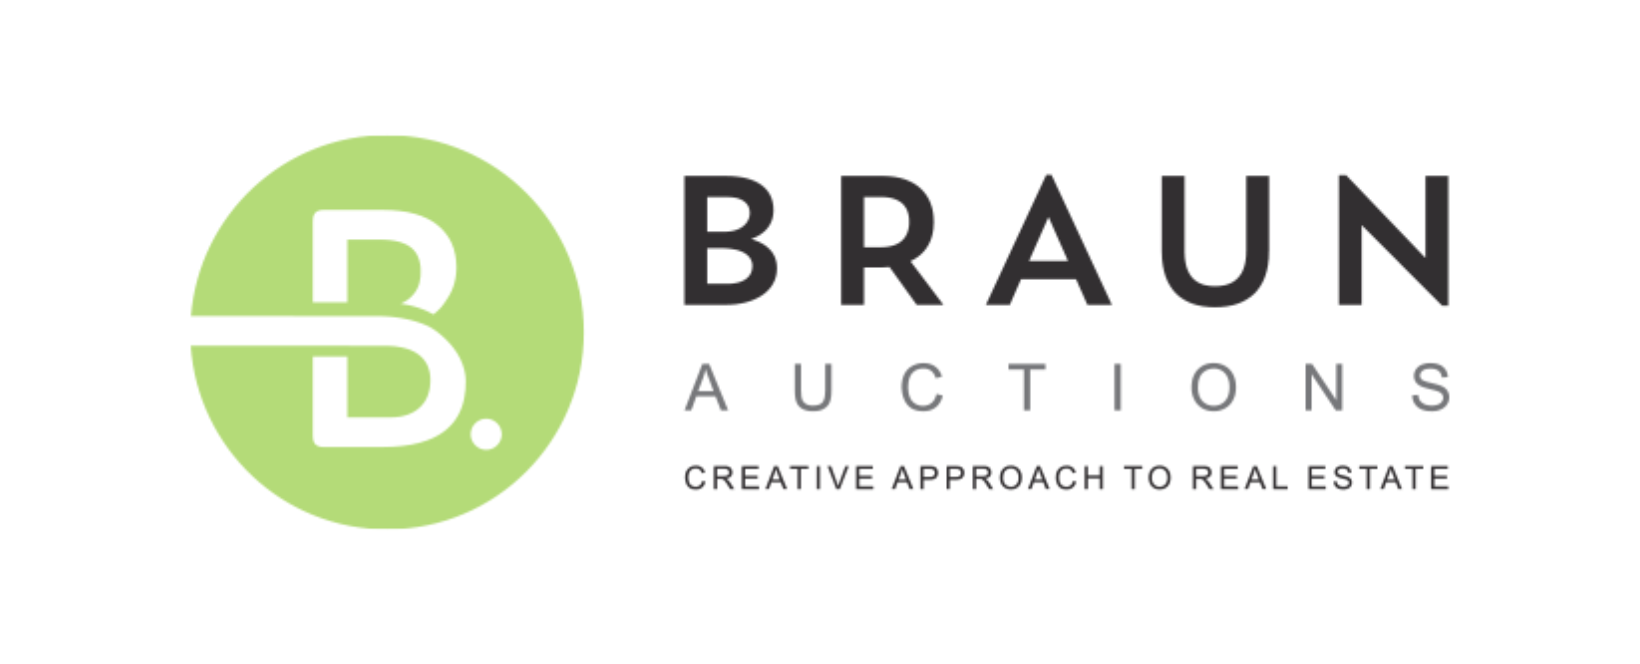 Braun Auctions logo